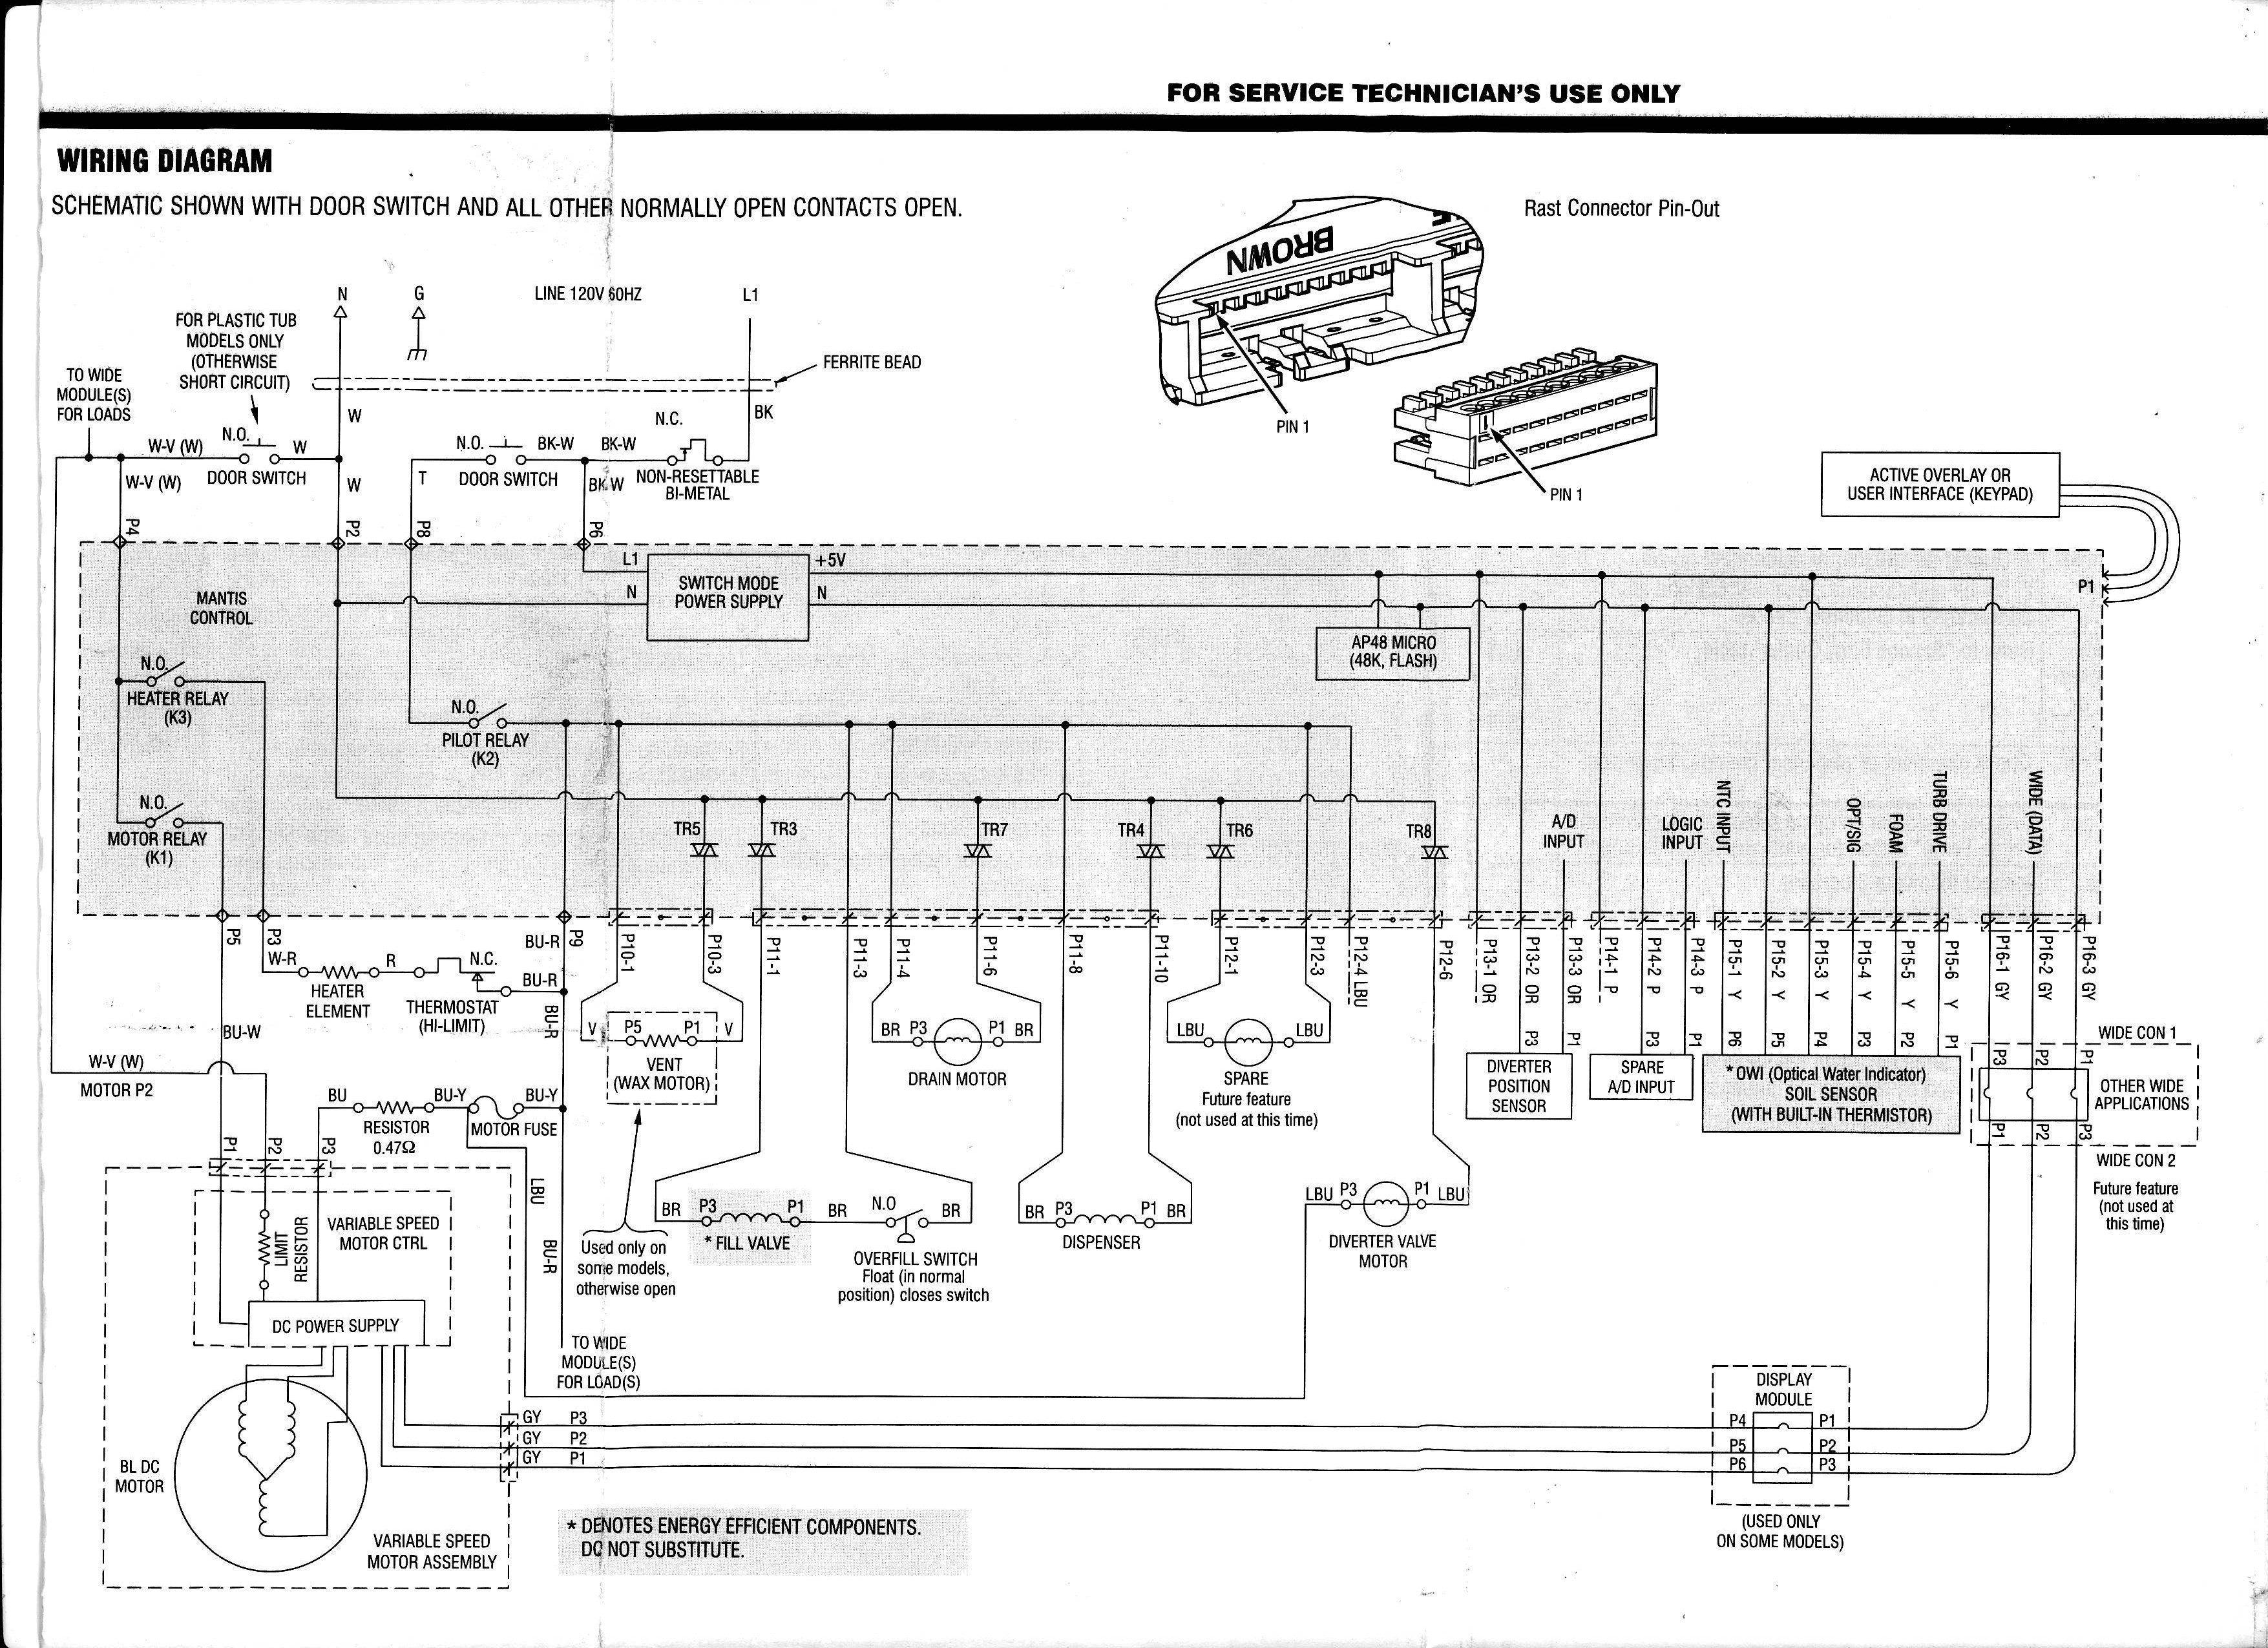 Ge Rr7 Relay Wiring Diagram from mainetreasurechest.com